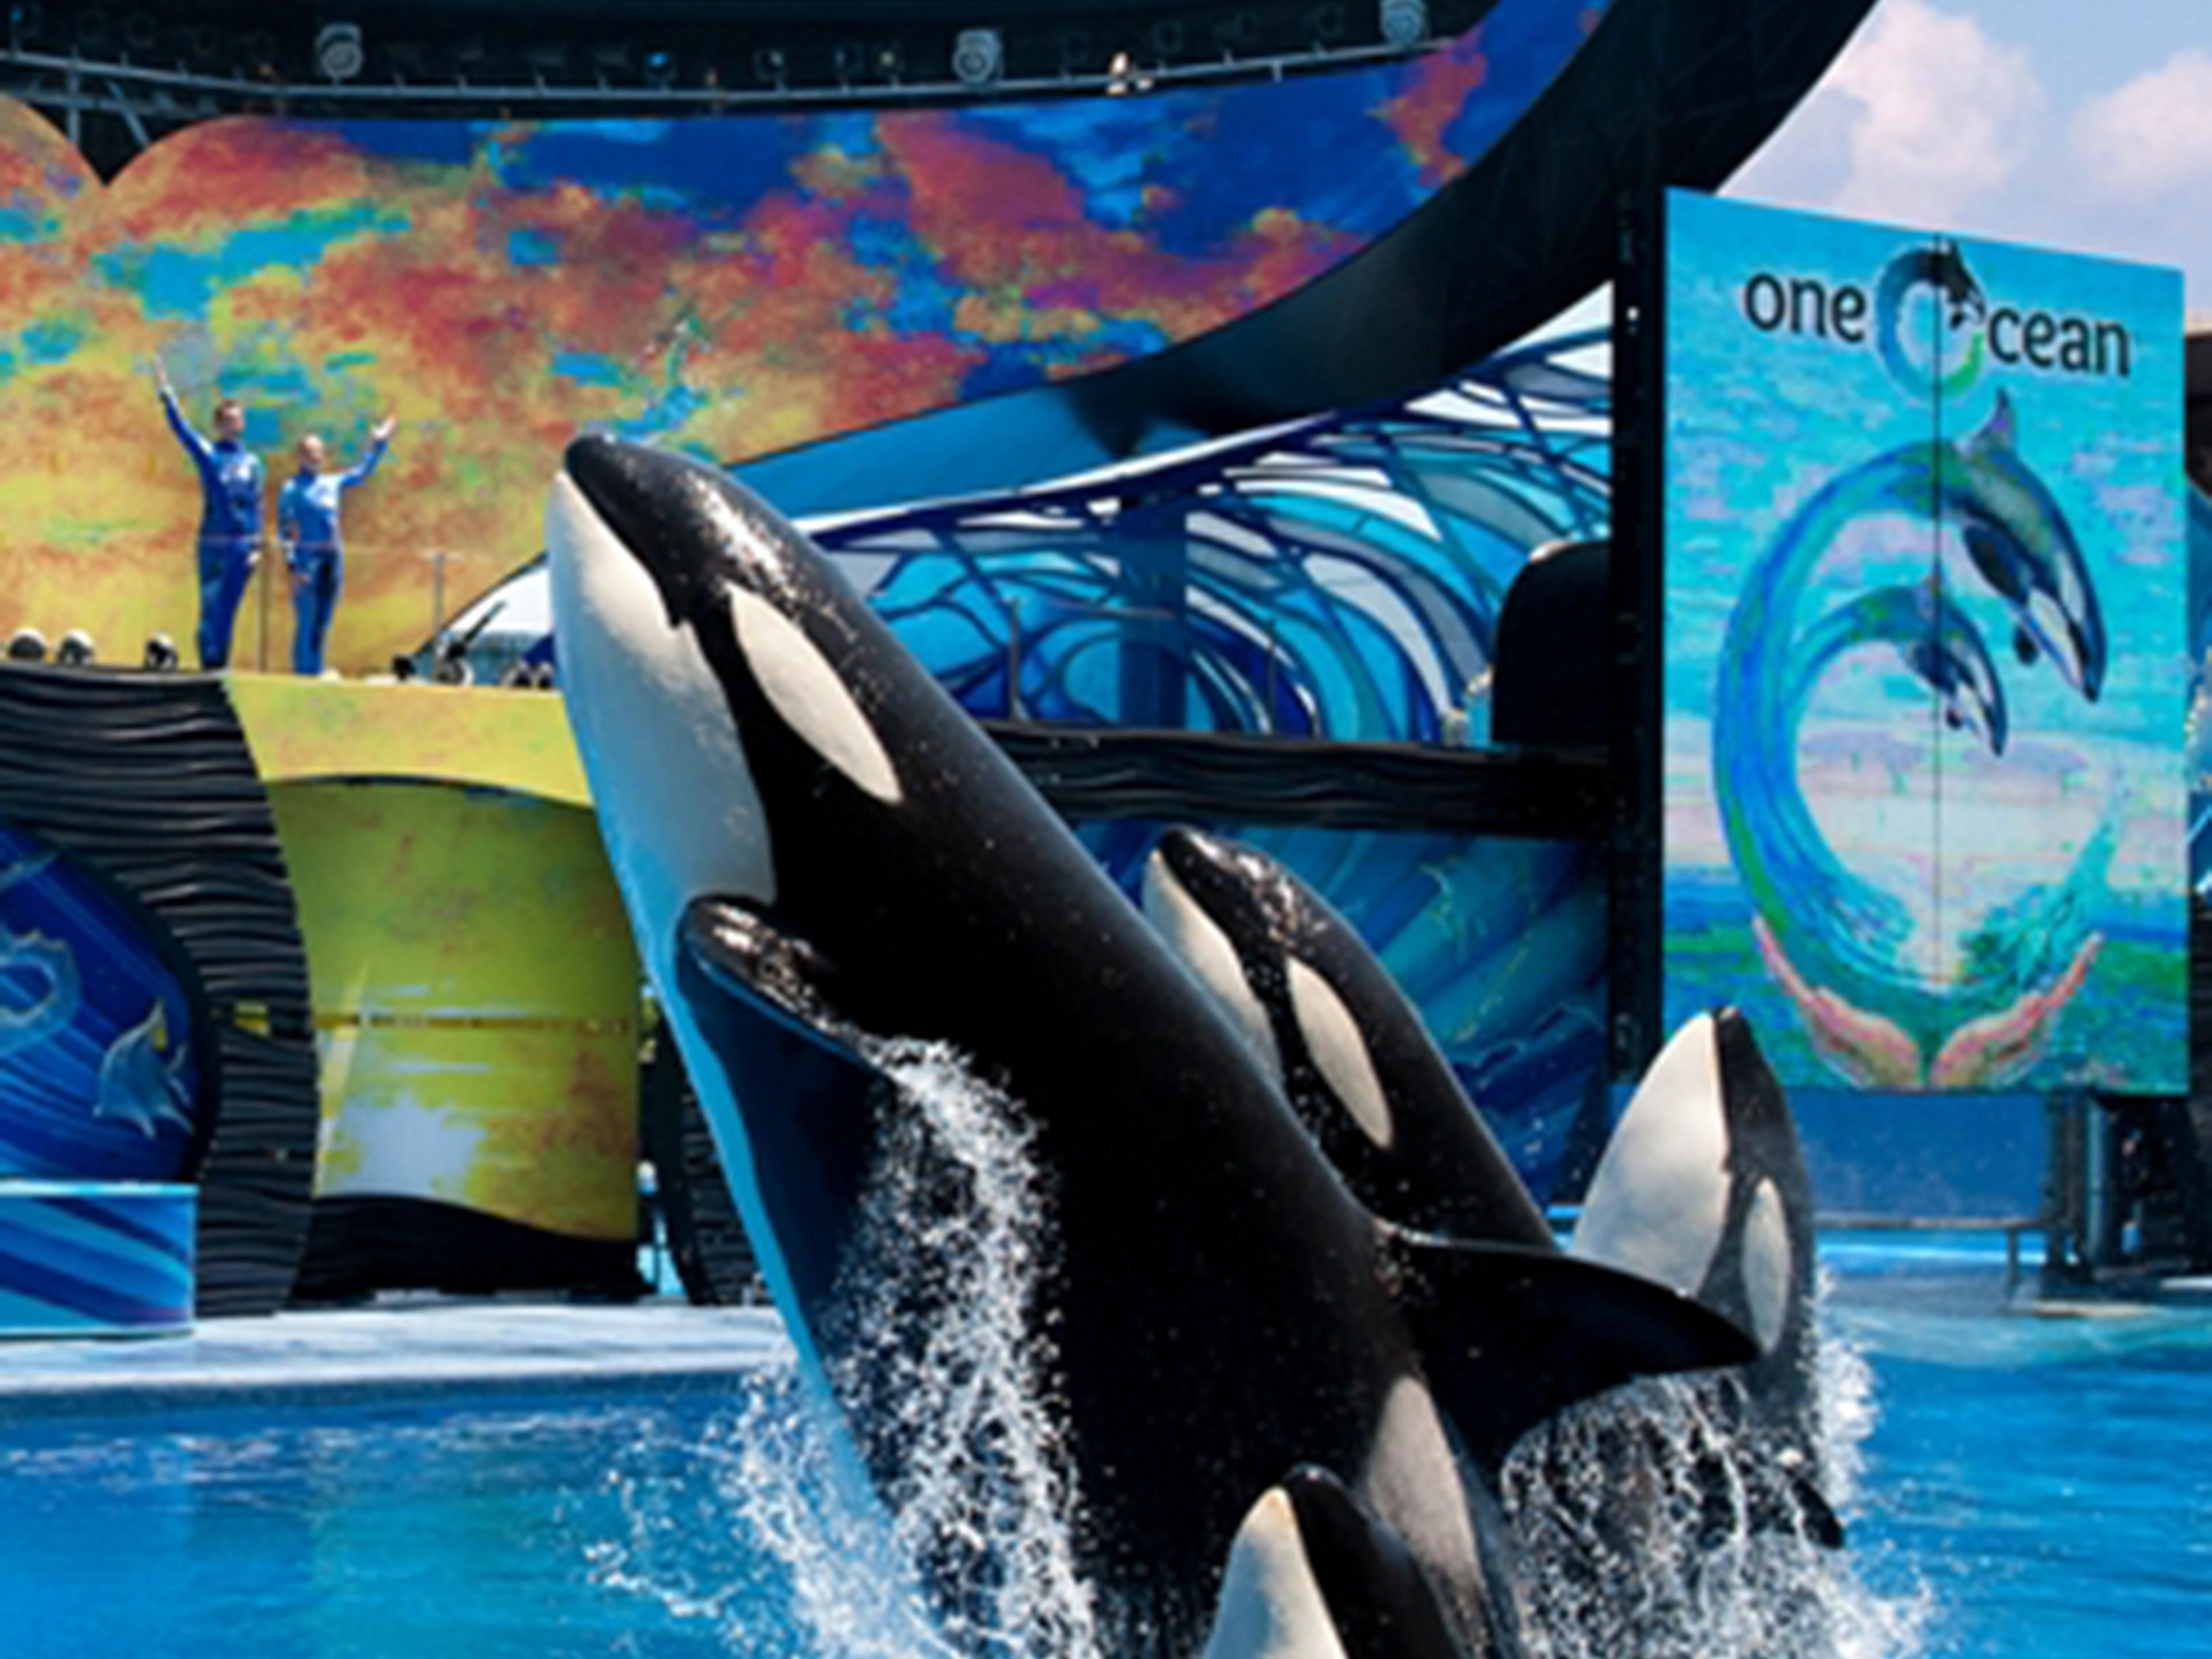 SeaWorld San Diego is only a short drive away from our hotel.